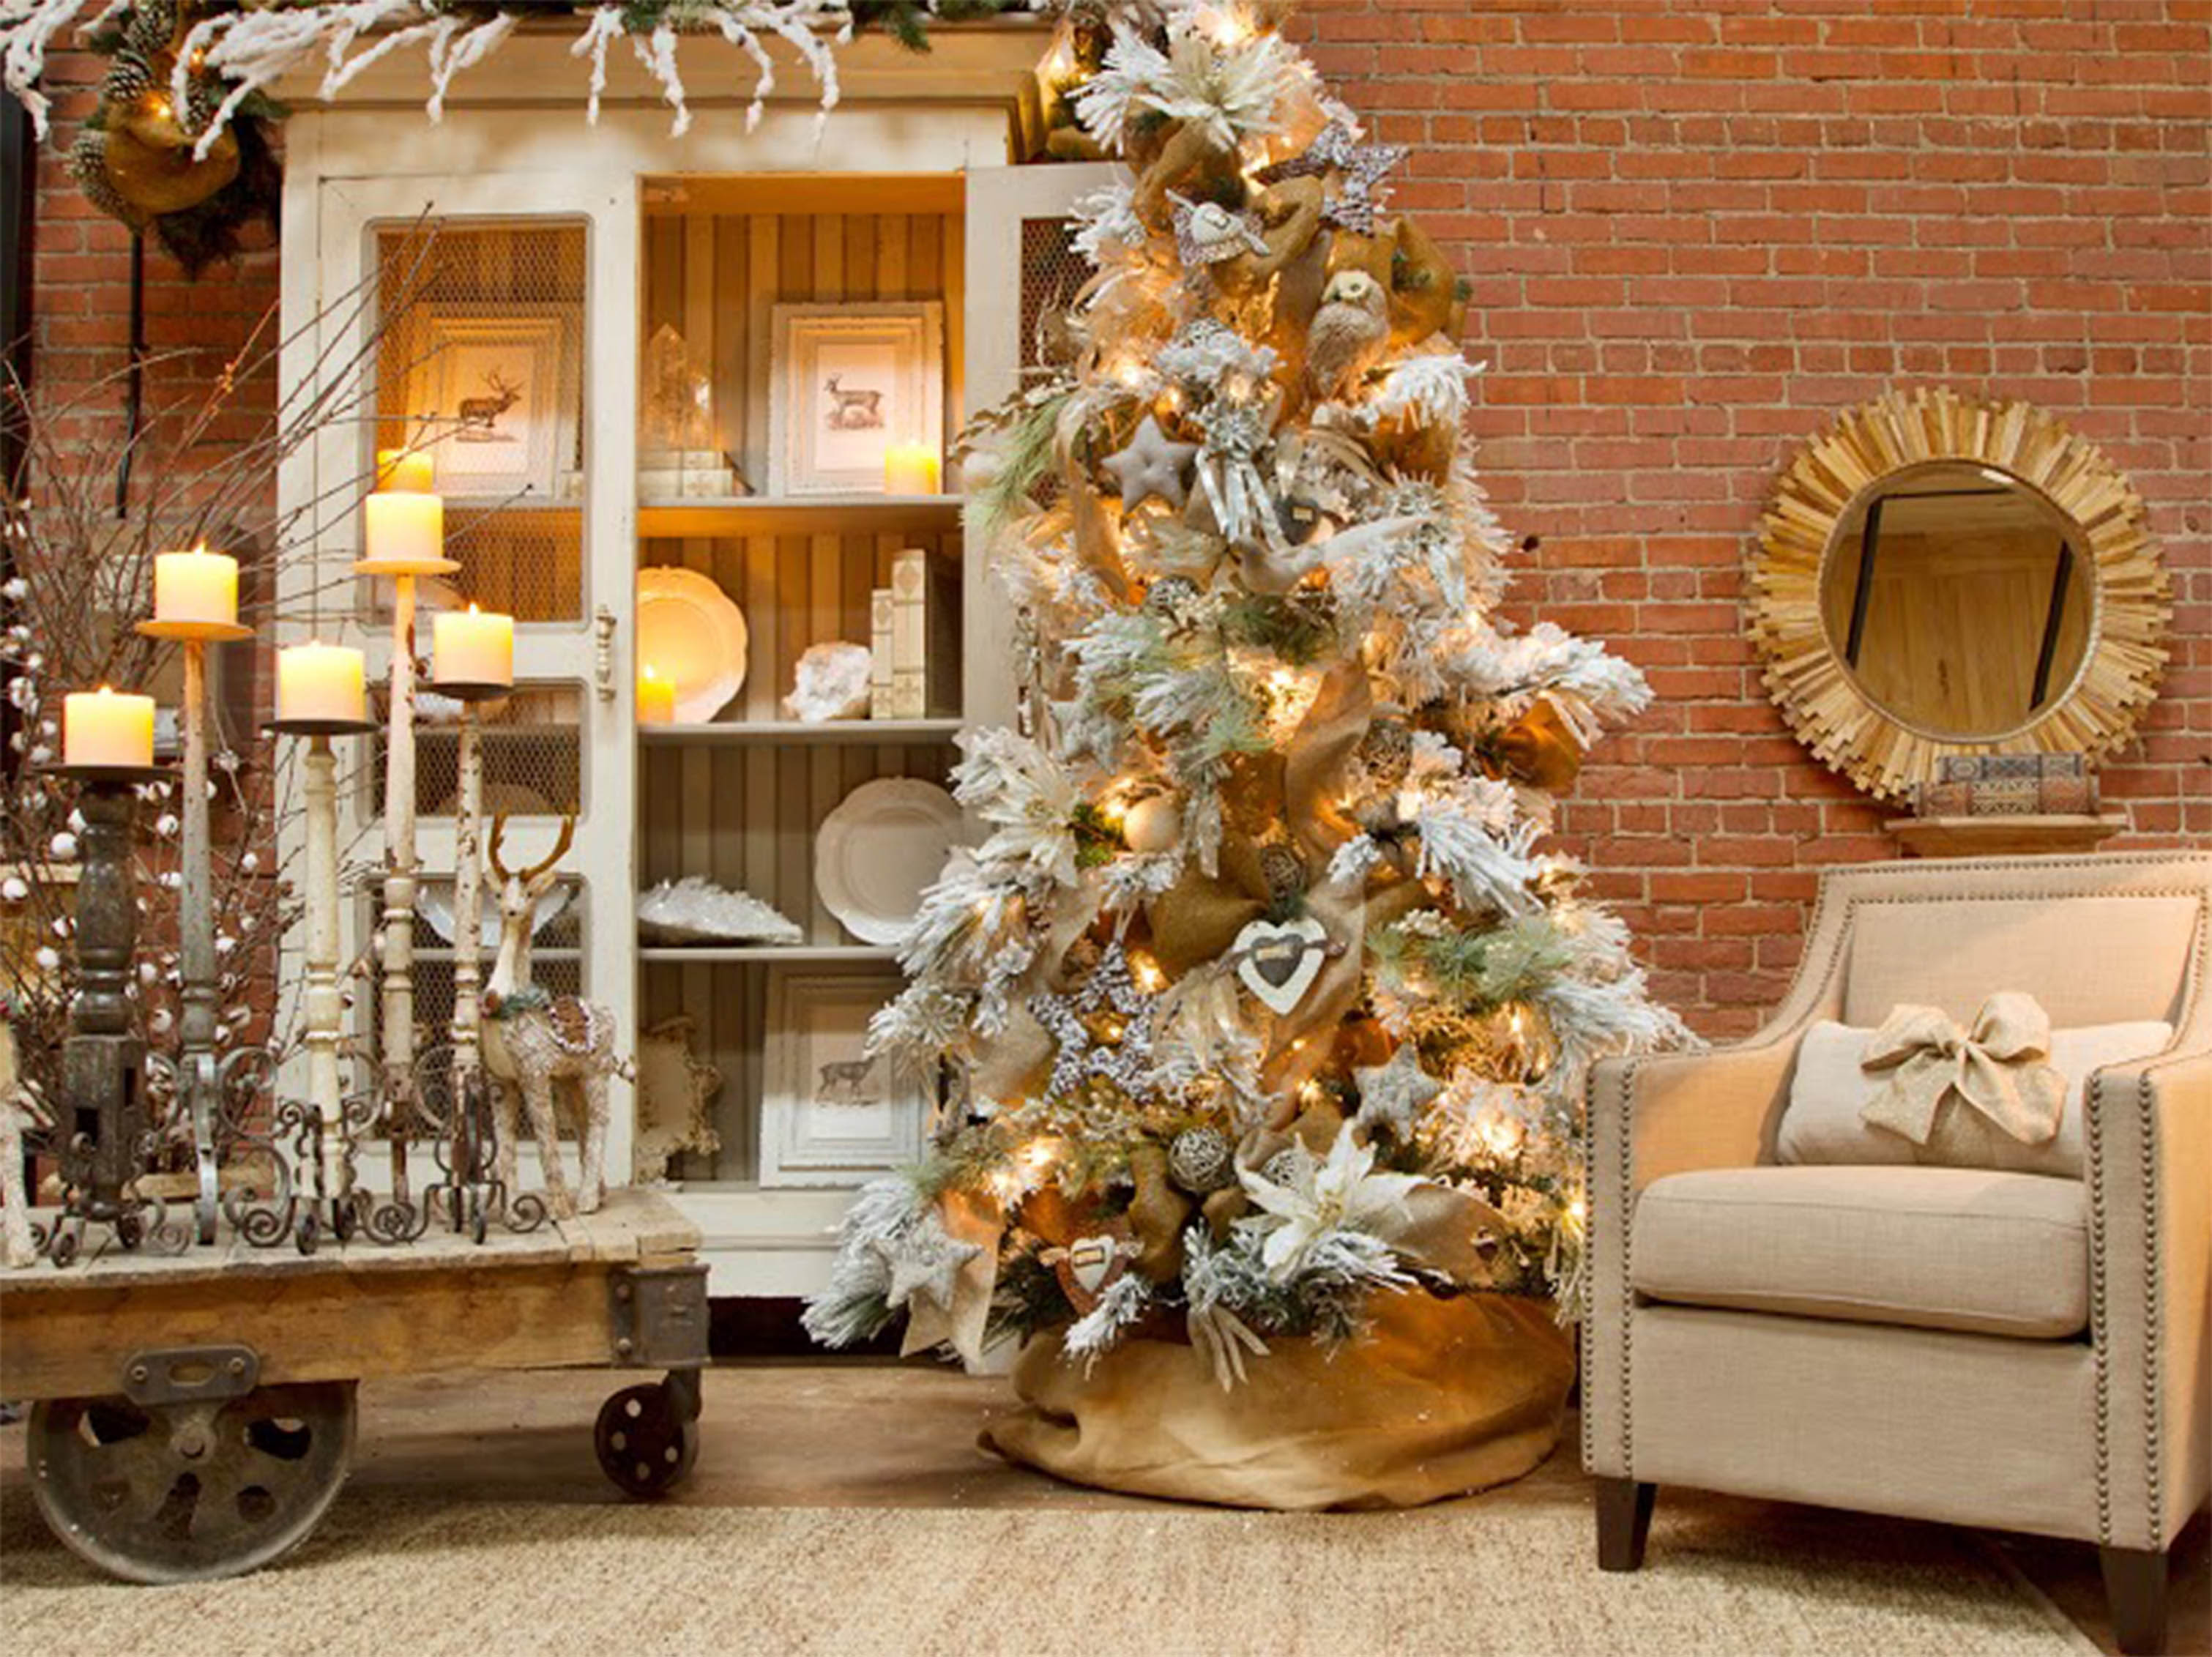 Superior Home Decorations Ideas In White And Gold For Christmas